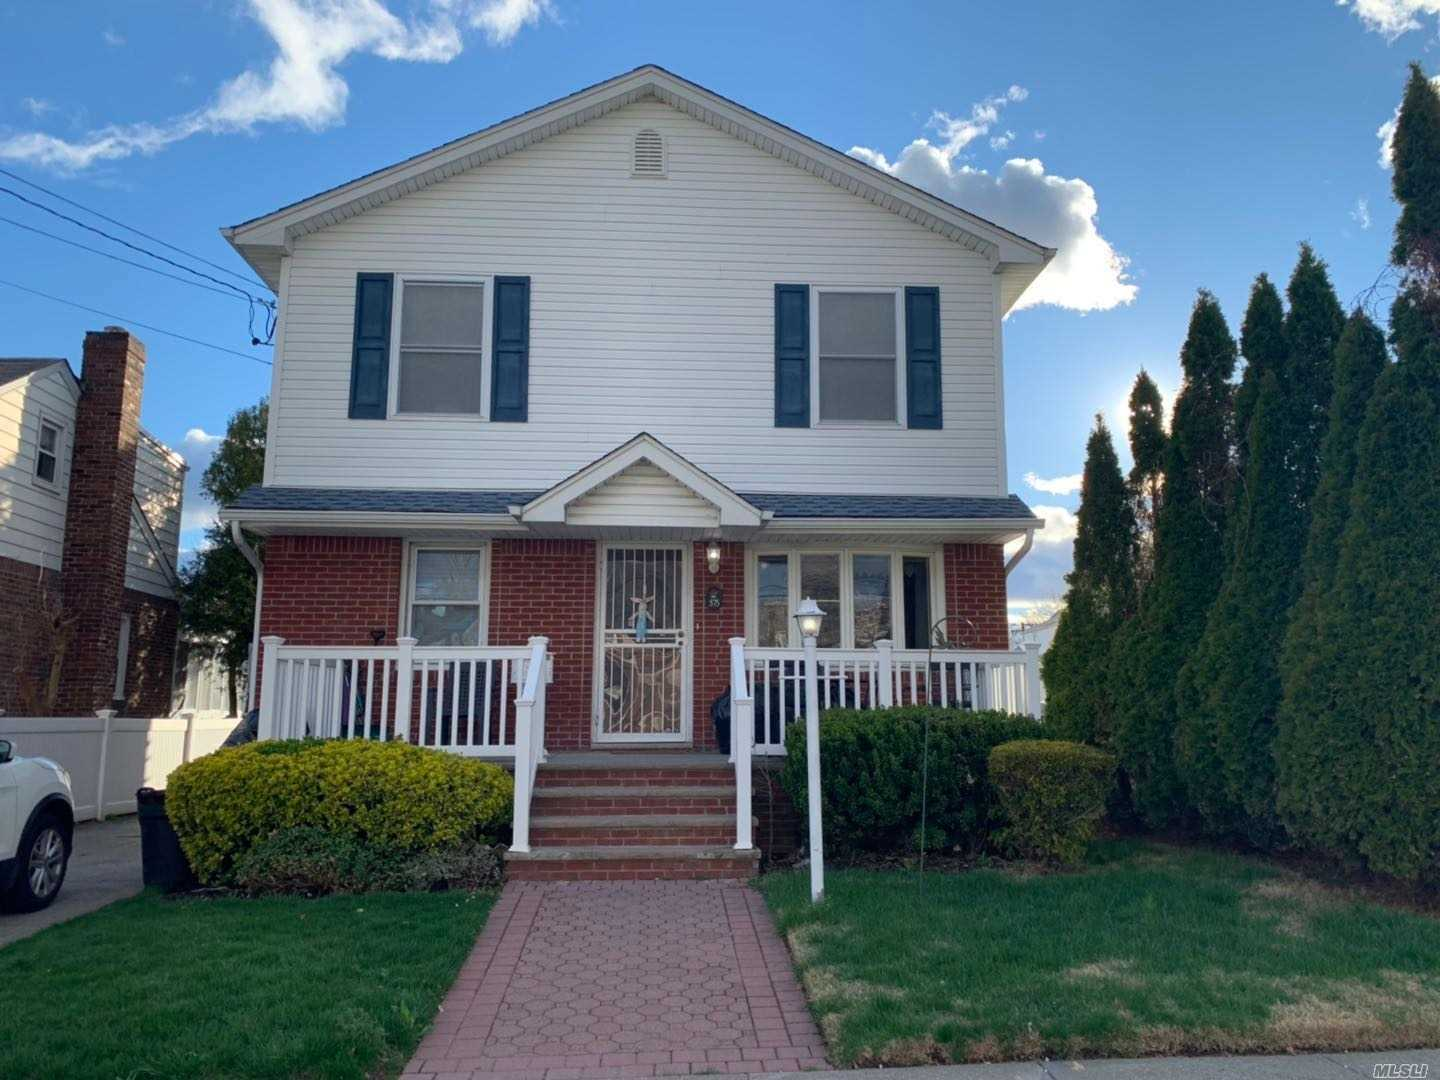 Updated Colonial House at New Hyde Park with 5 bedroom, living room, formal dining room, kitchen, 2 full bathrooms, 1 half bath, full finished basement, fancied yard, School Dic #5, convenient to all transportation, close to LIRR, nice pool and deck at the back yard.